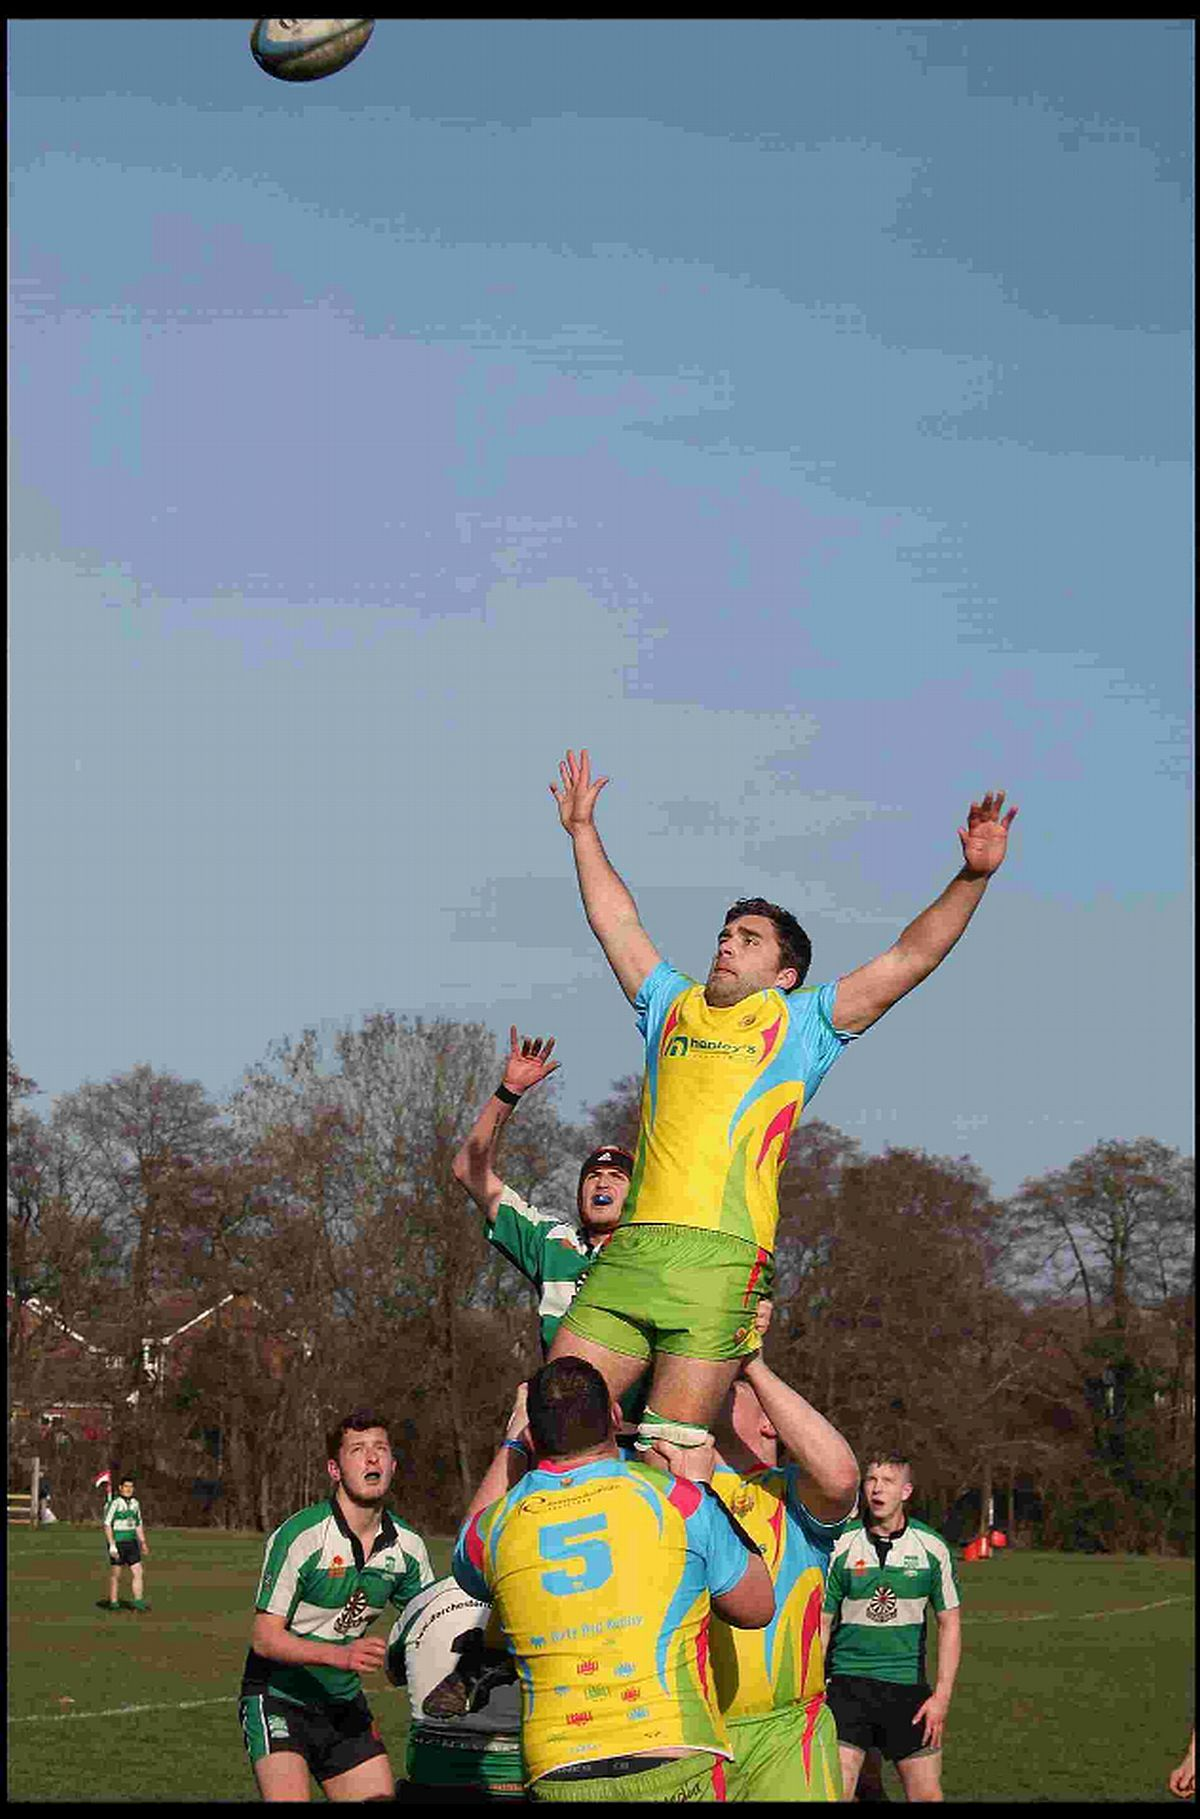 THRASHED: Dorchester Seconds (green shirts) battle in vain against Dorset Dockers on Saturday